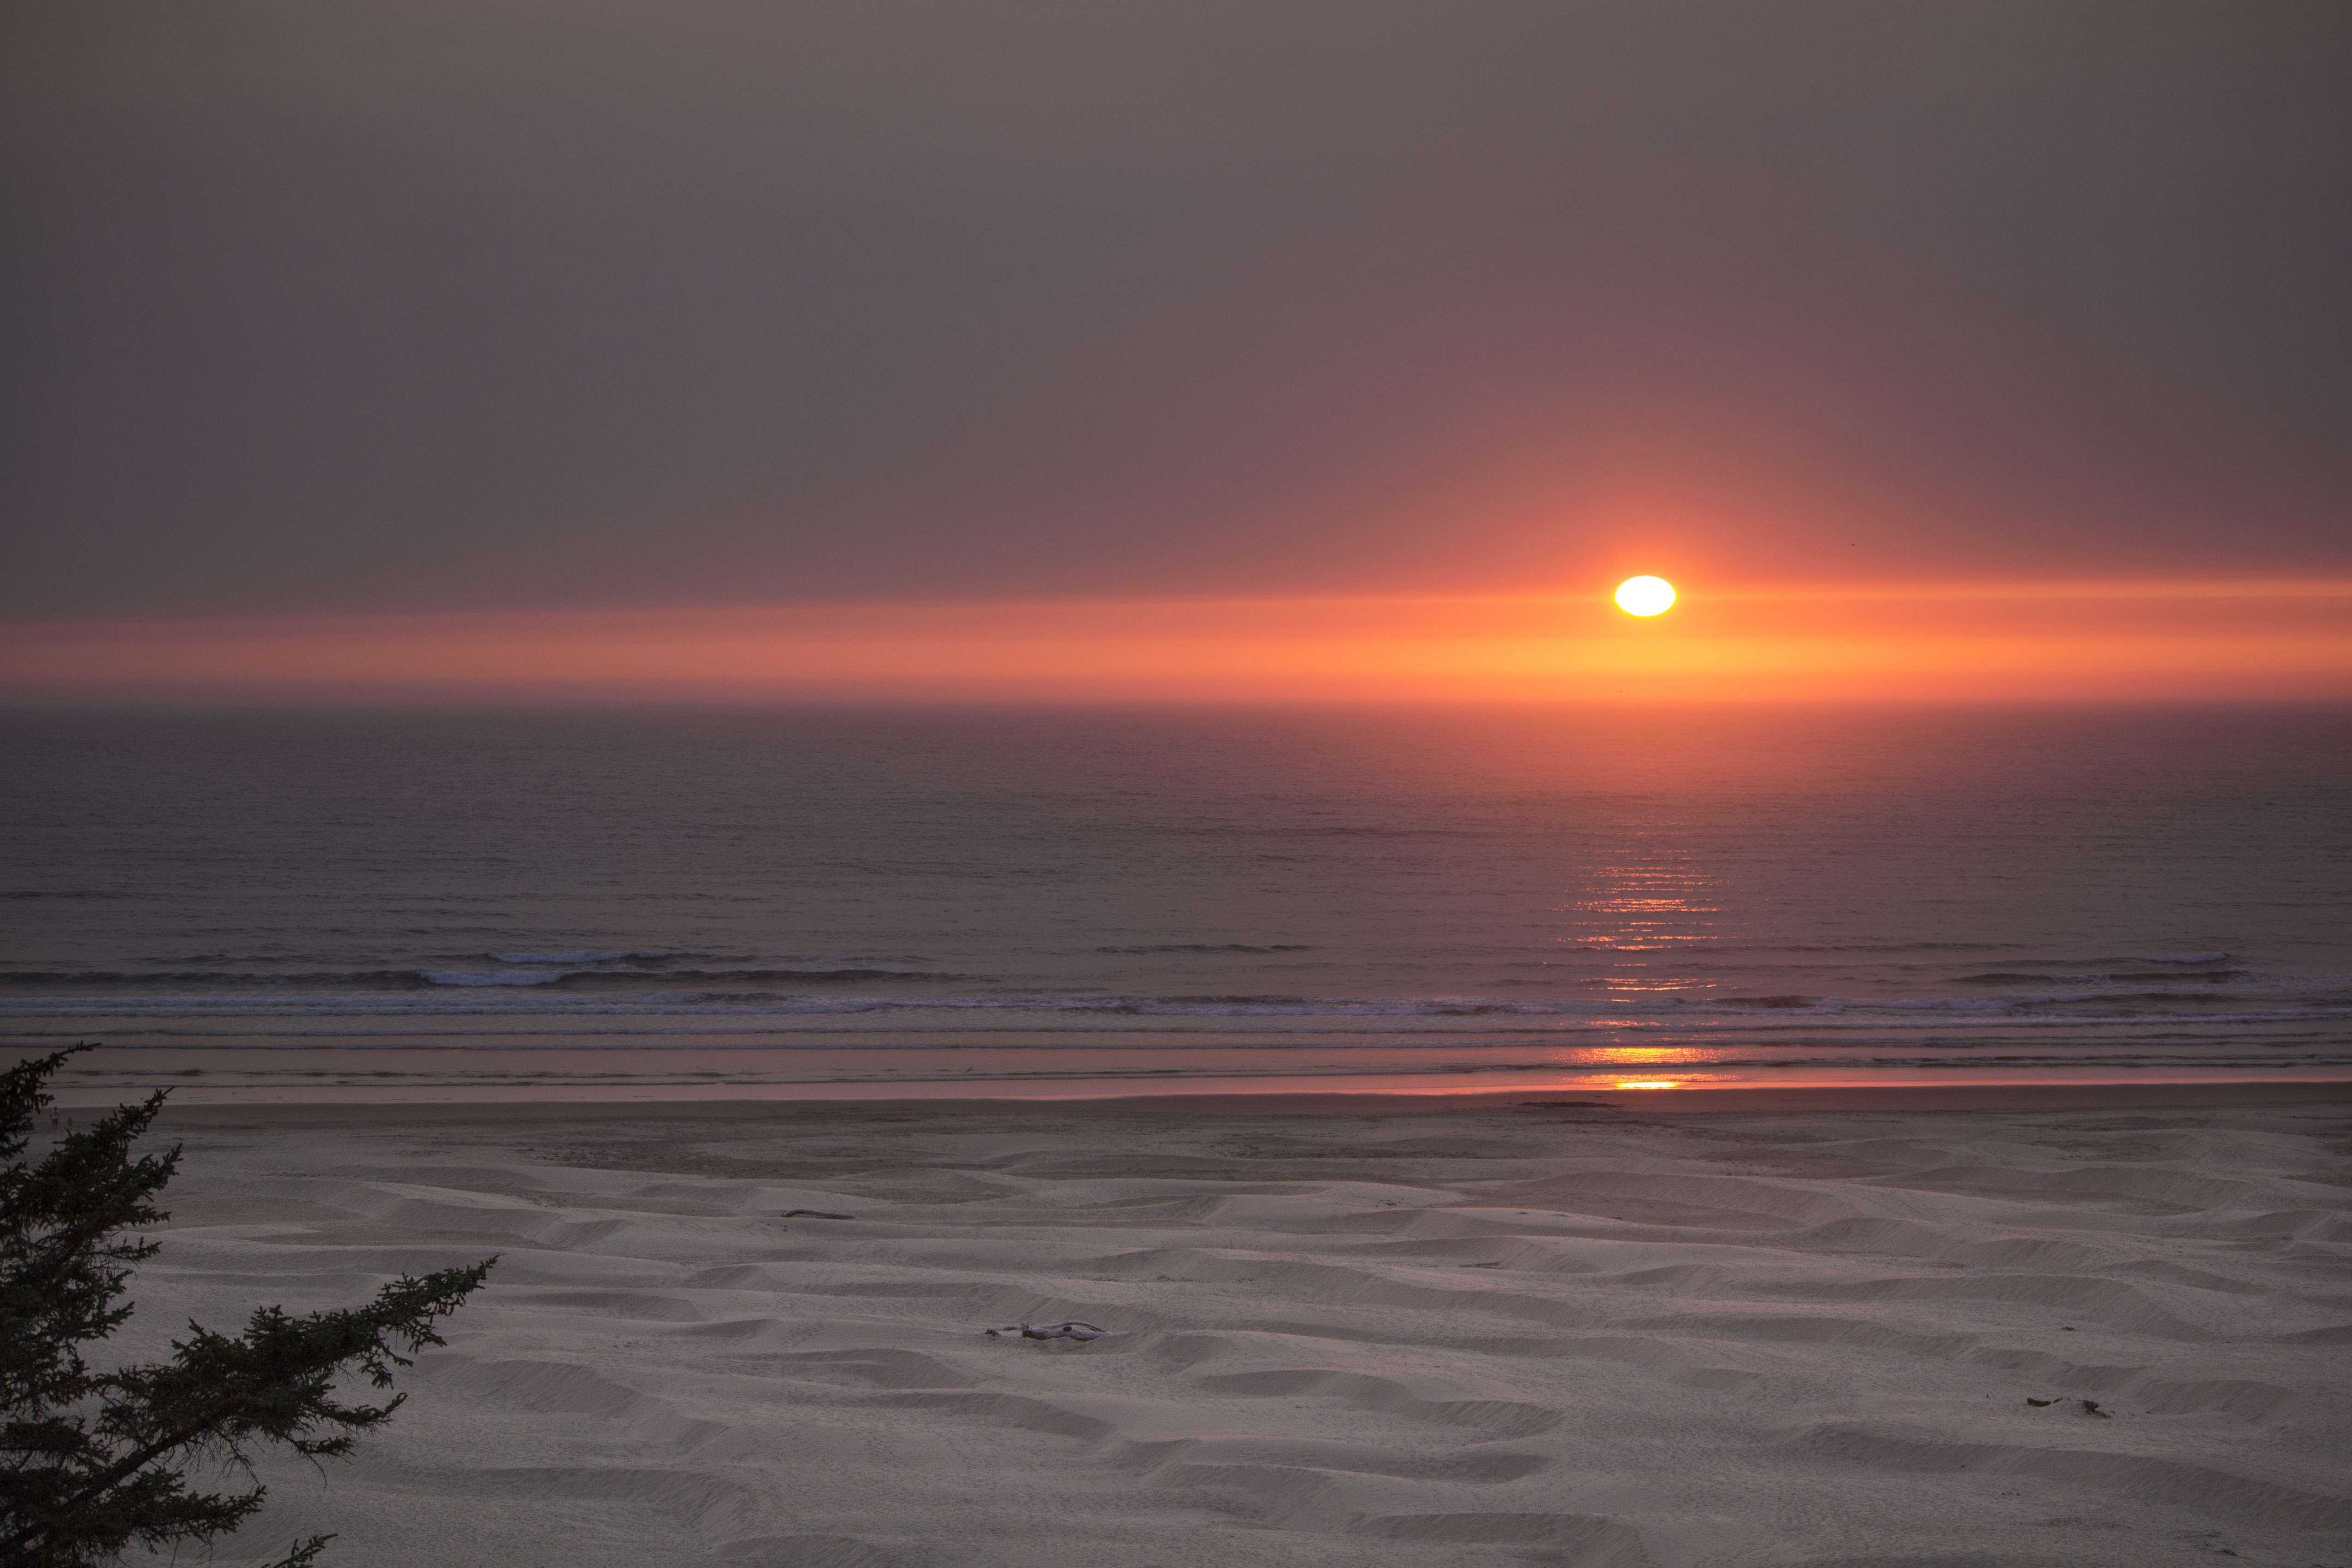 Sunset at the coast, Oregon, Beach, Red, Water, Sunset, HQ Photo